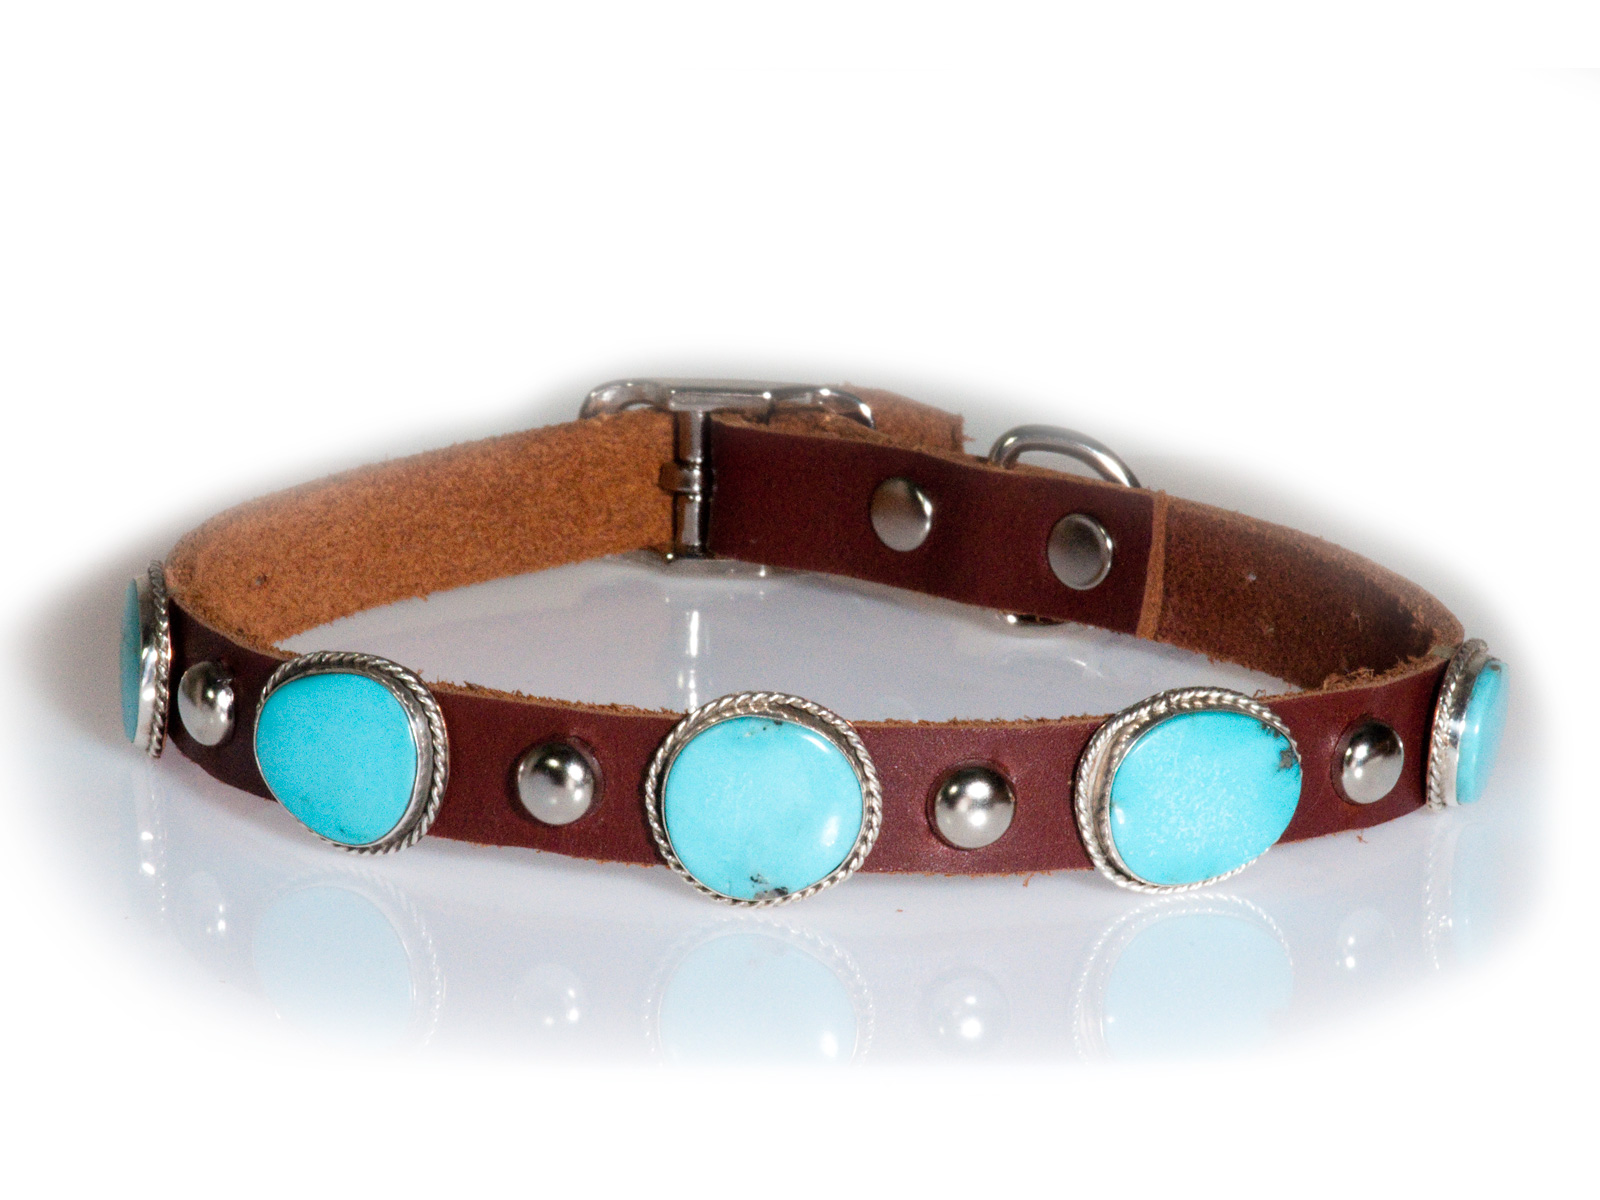 5 Stone Turquoise Leather Dog Collar